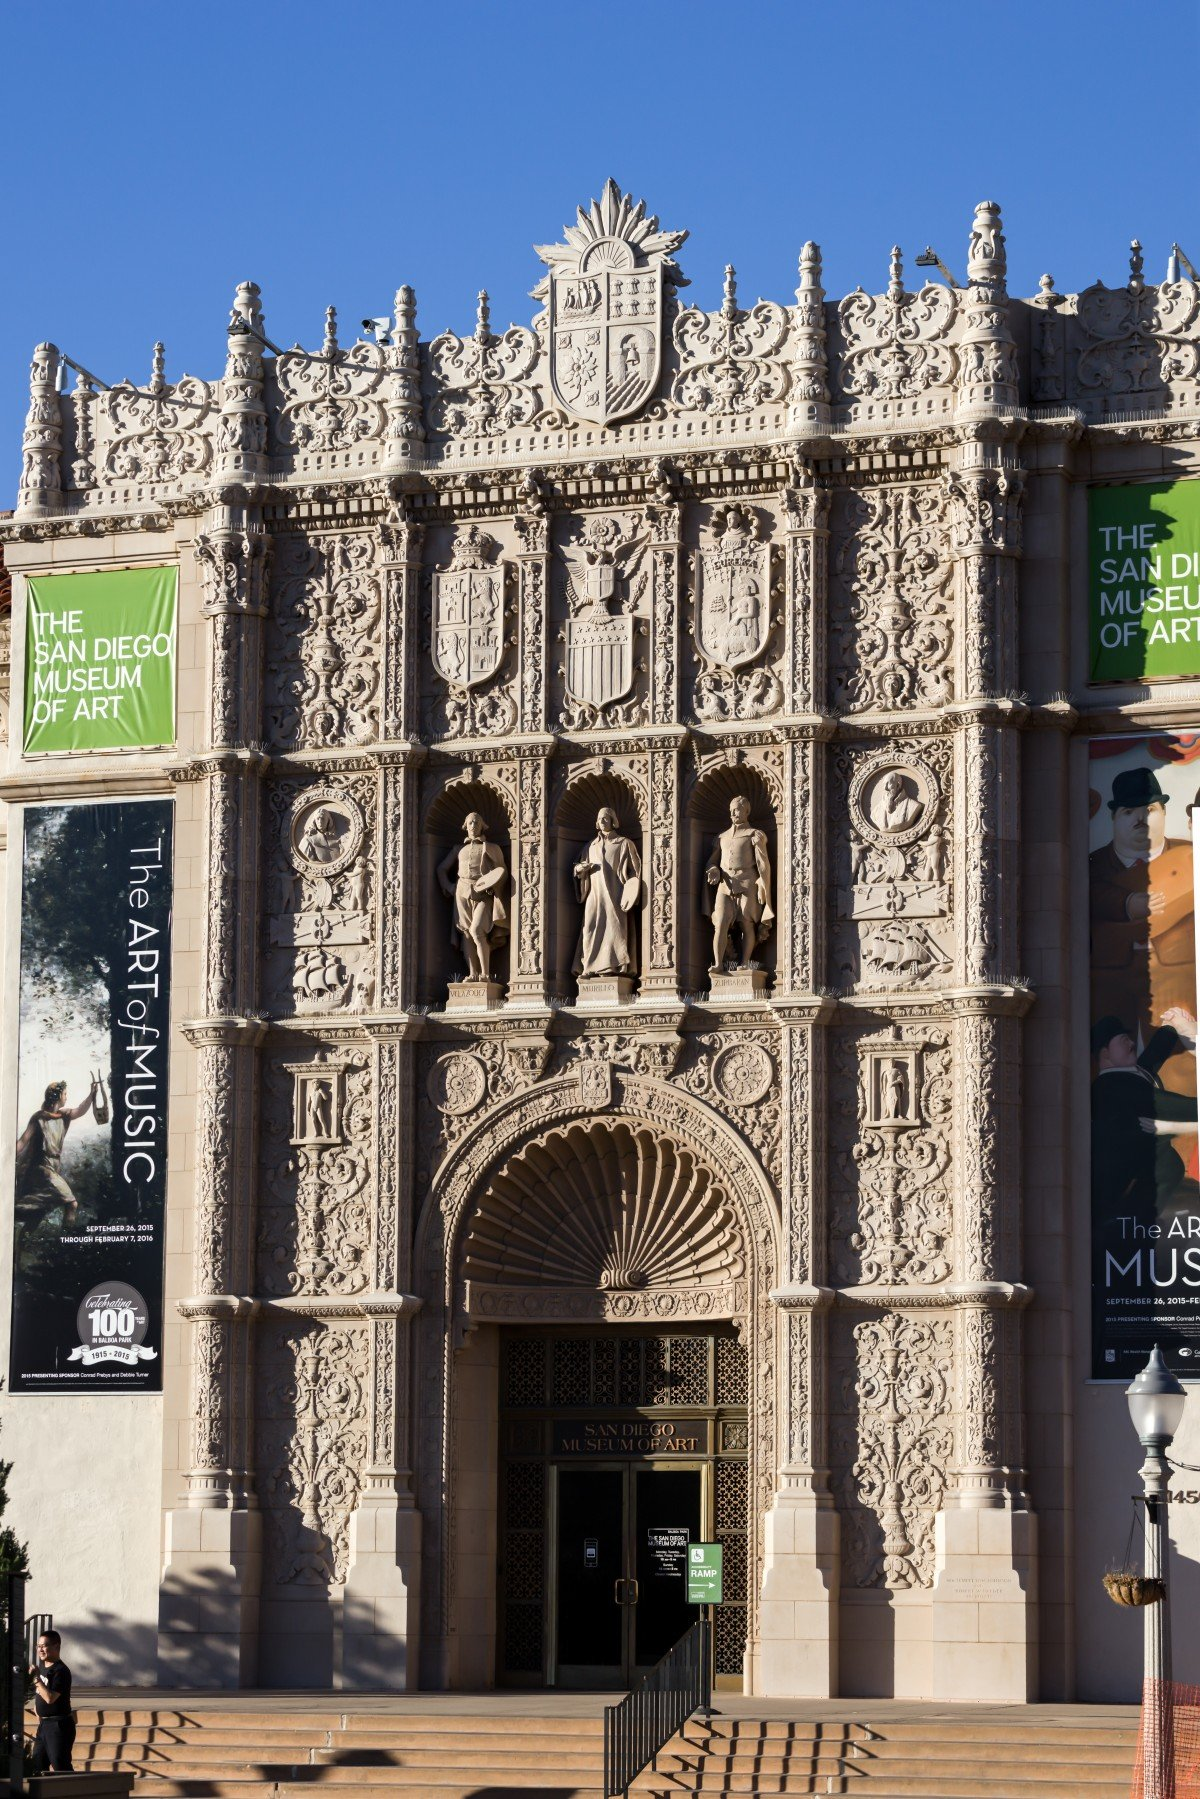 an analysis of various polish arts in san diego museum of arts The founding campus of the 23-campus california state university system, san jose state provides a comprehensive university education, granting bachelor's, master's and doctoral degrees through its eight colleges.